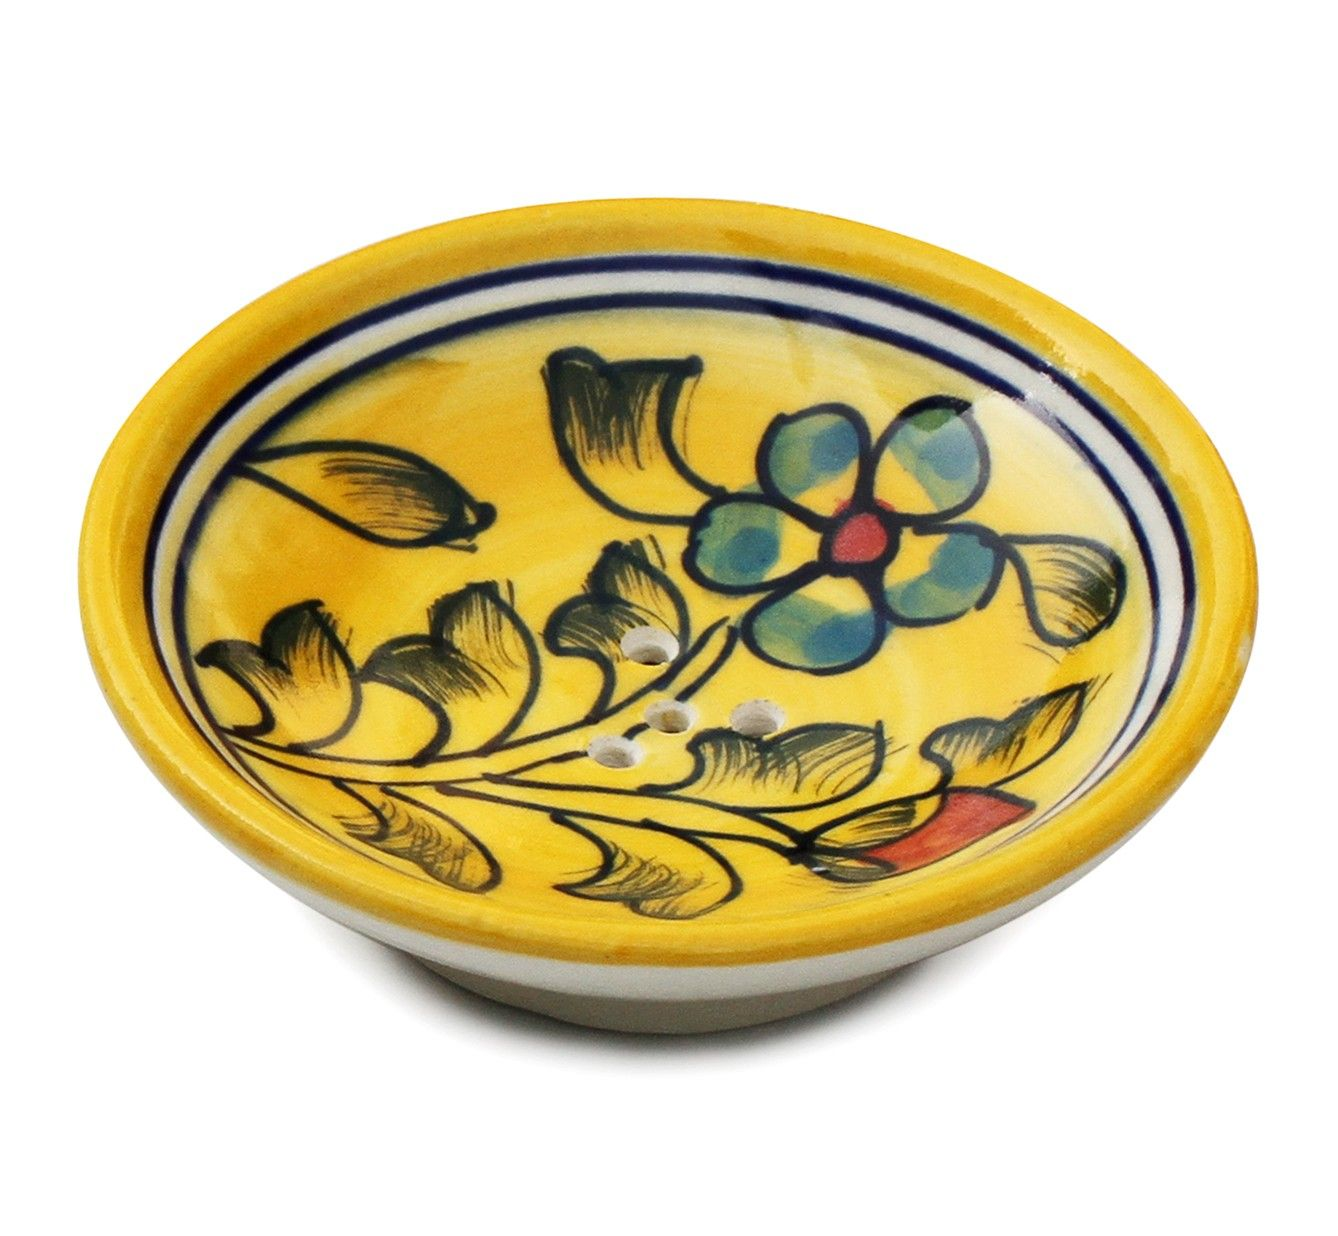 Flowery Abstractions Buy Wholesale Handmade Ceramic Soapdish With Drainage Holes In Yellow Fl Soap Dish For Shower Decorative Soap Dish Yellow Ceramics